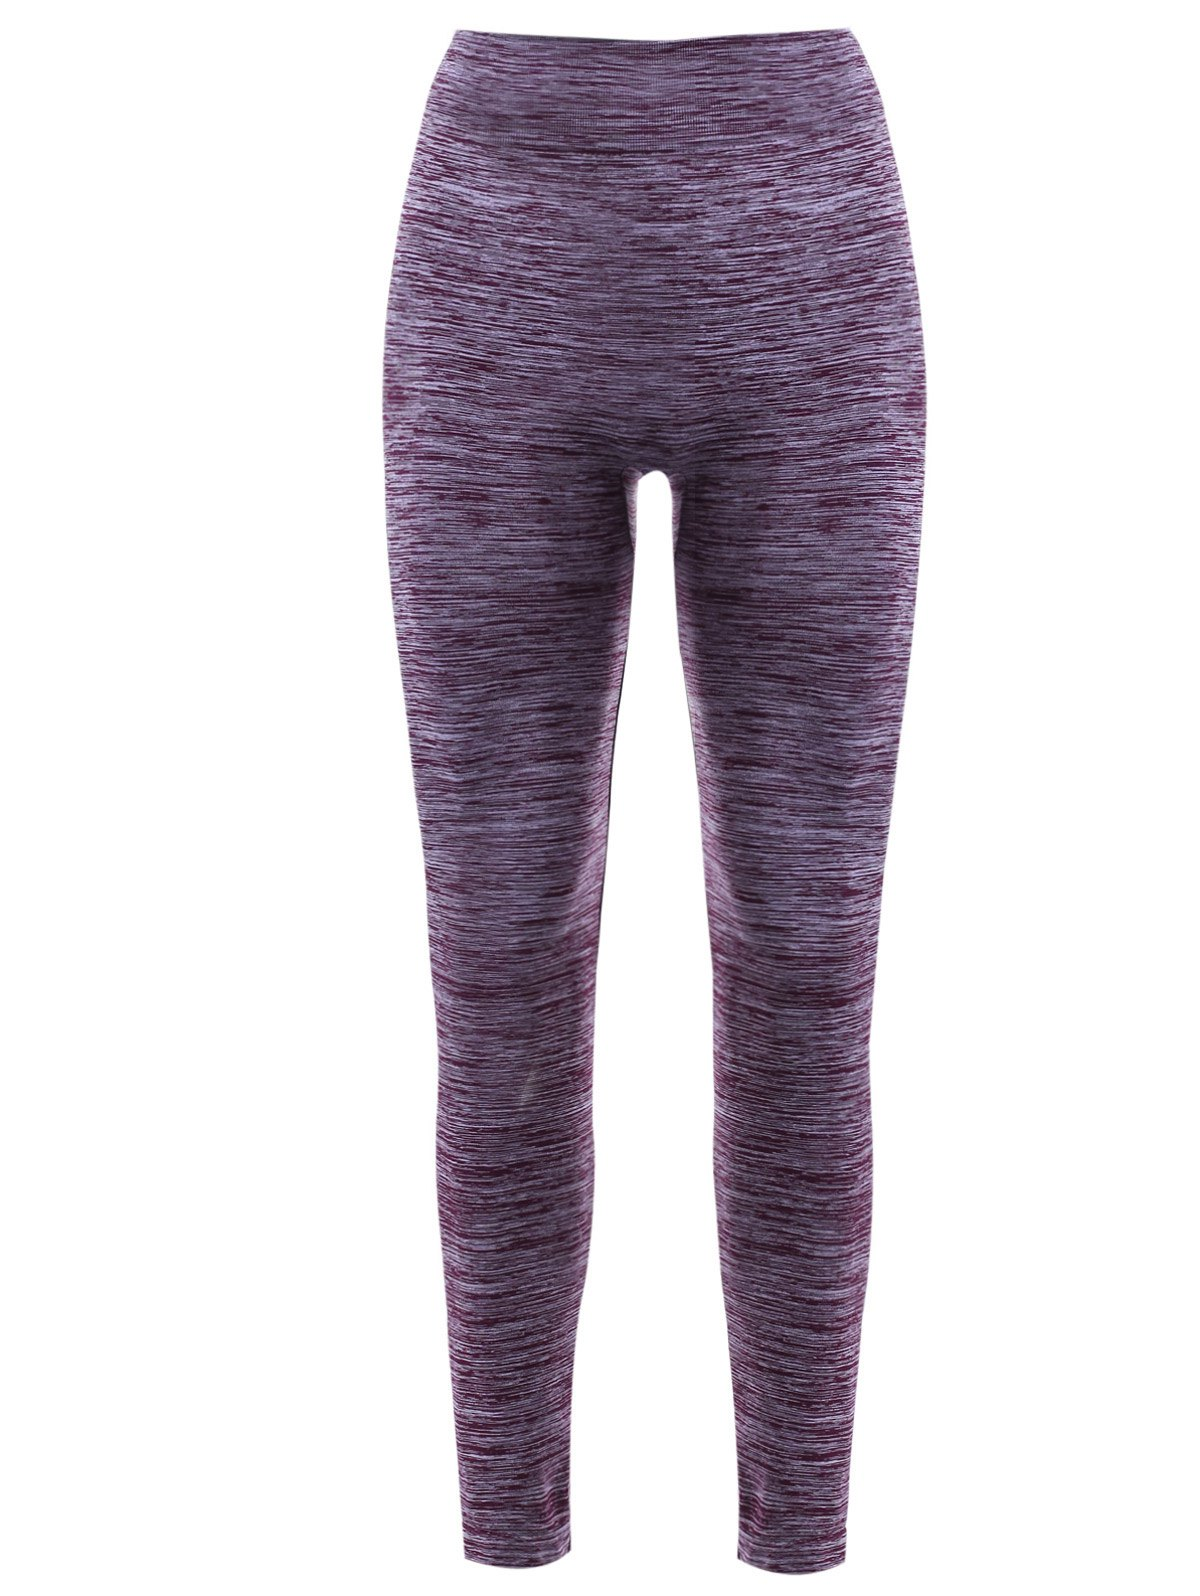 Elastic Waist Women's Sports Leggings - PURPLE M